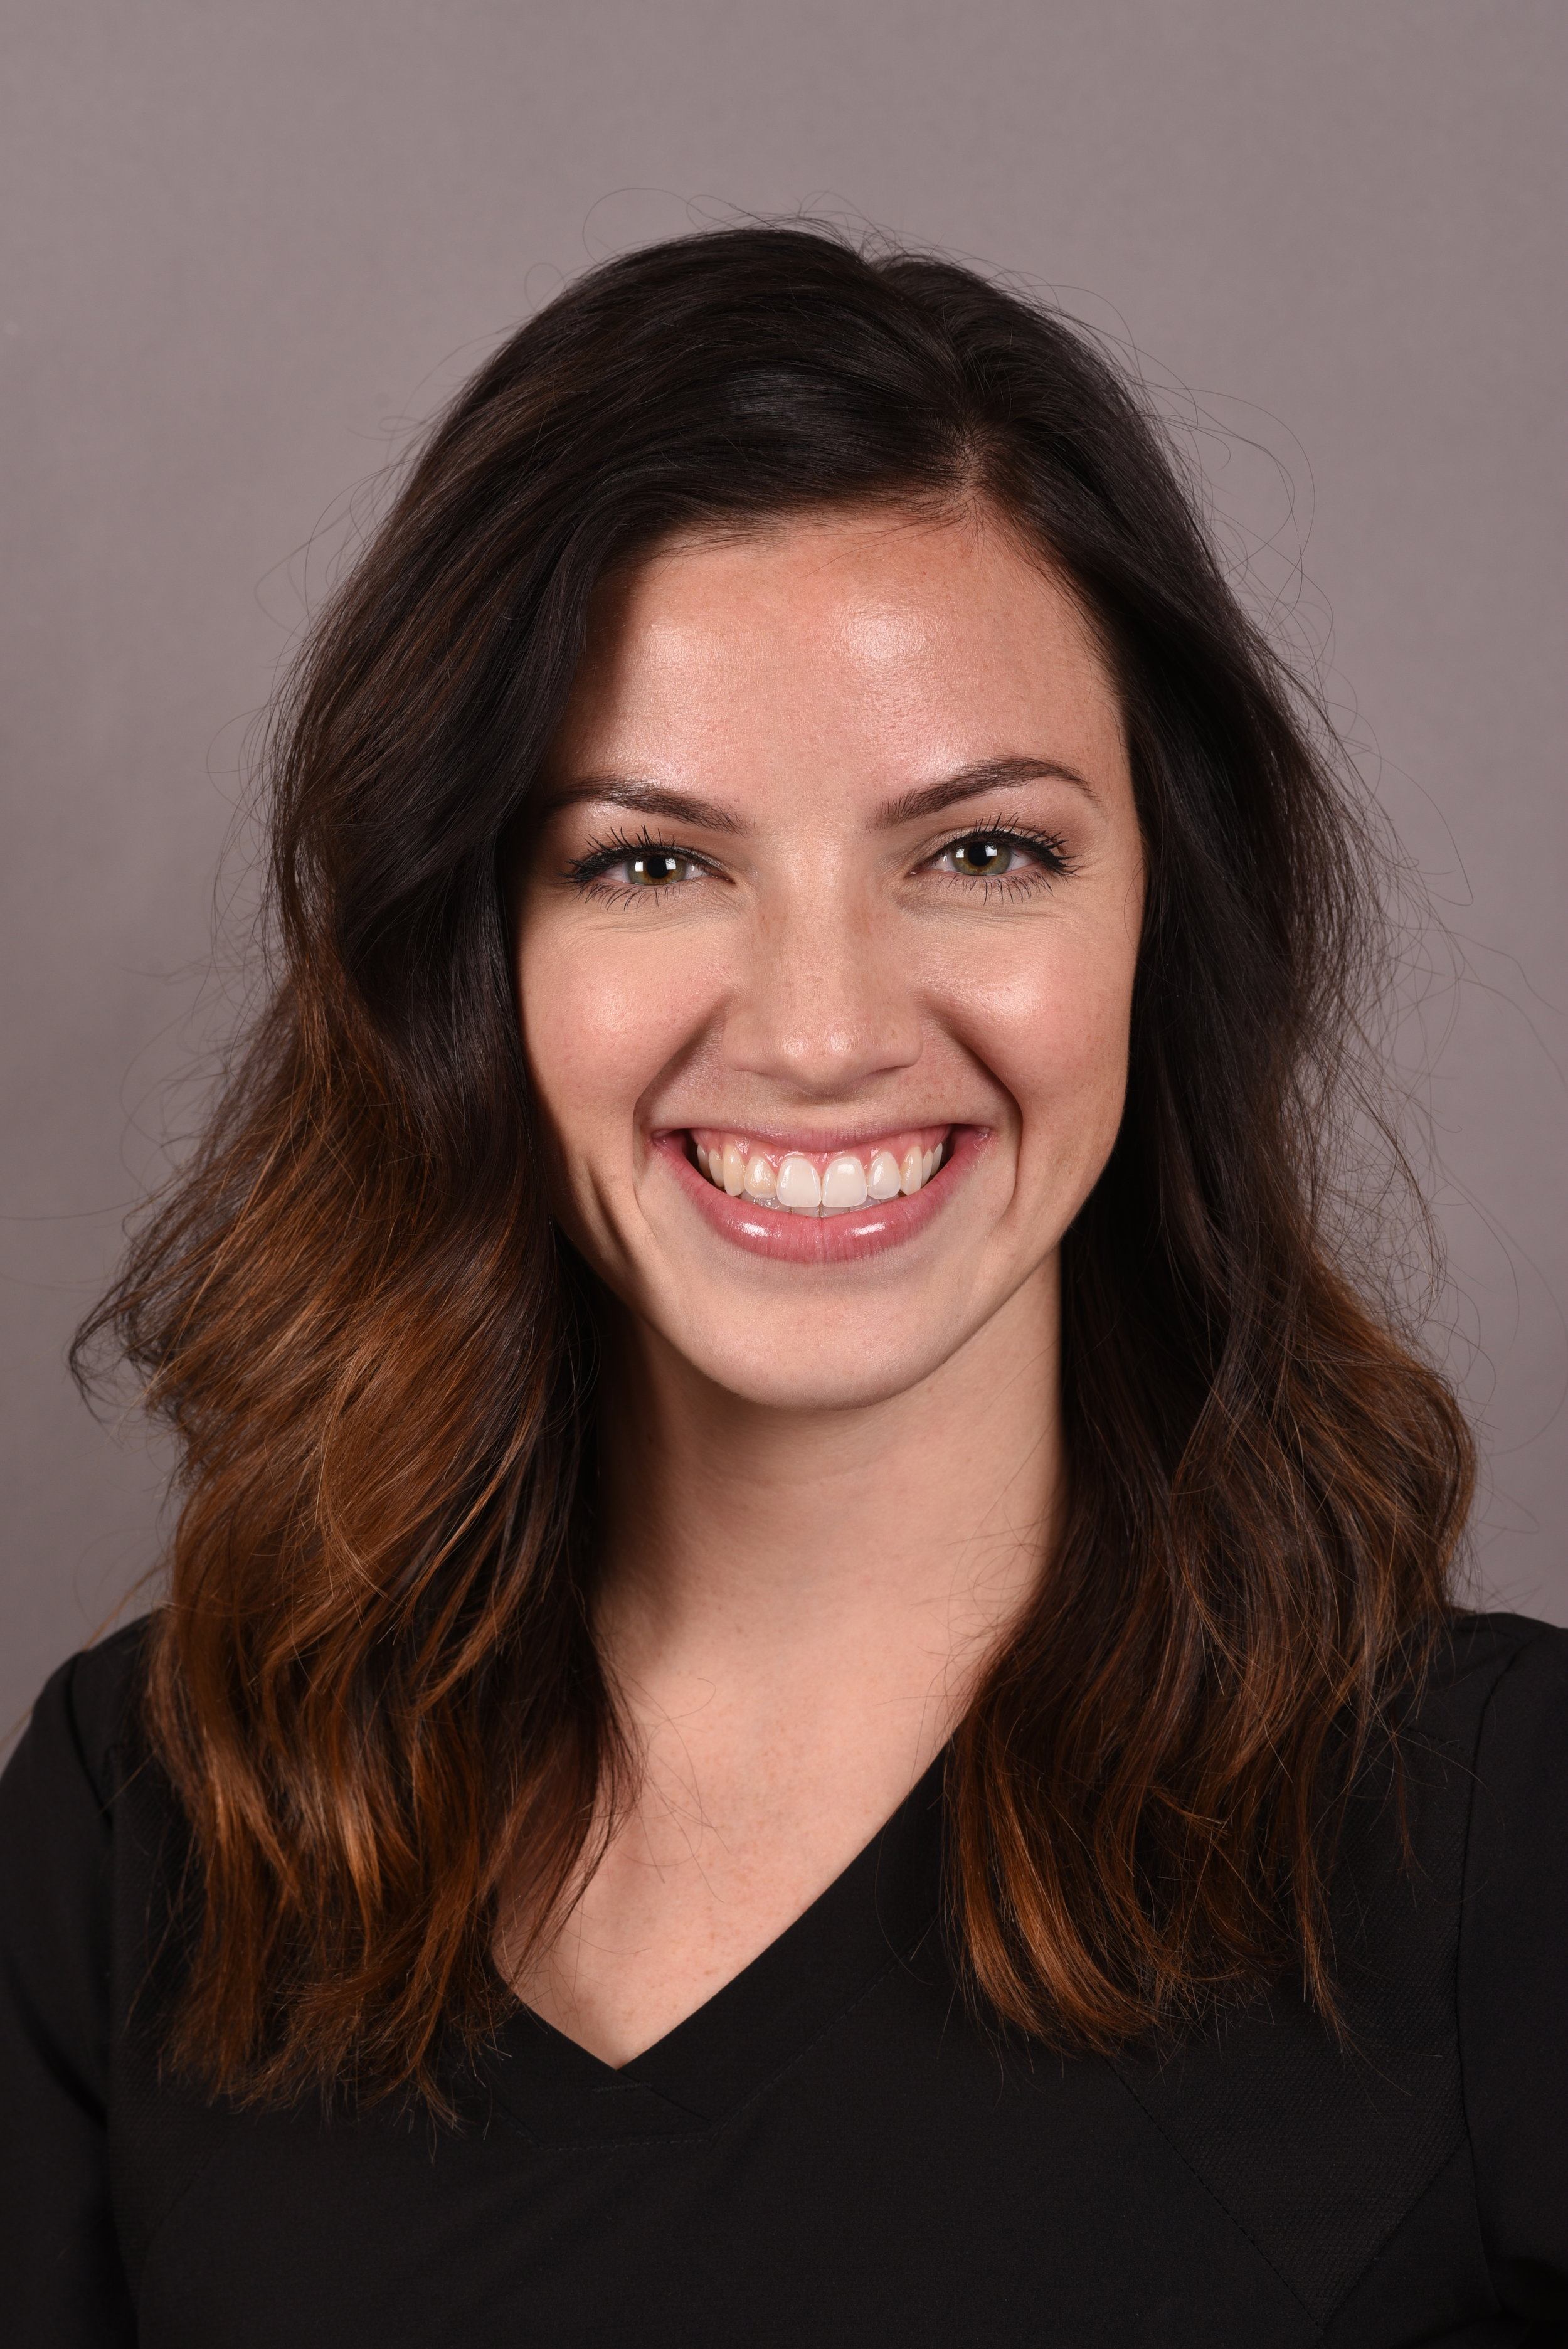 Dani - Office ManagerA Texas native, Dani joined our team in June of 2019. She graduated from the University of Oklahoma with a Bachelor of Science in Microbiology and has been working in the dental field for the last 3 years. Dani loves to educate patients on their oral health and creating roadmaps to their dream smiles.Dani enjoys spending time with her husband Eric, and new puppy, traveling the world and shooting photography.